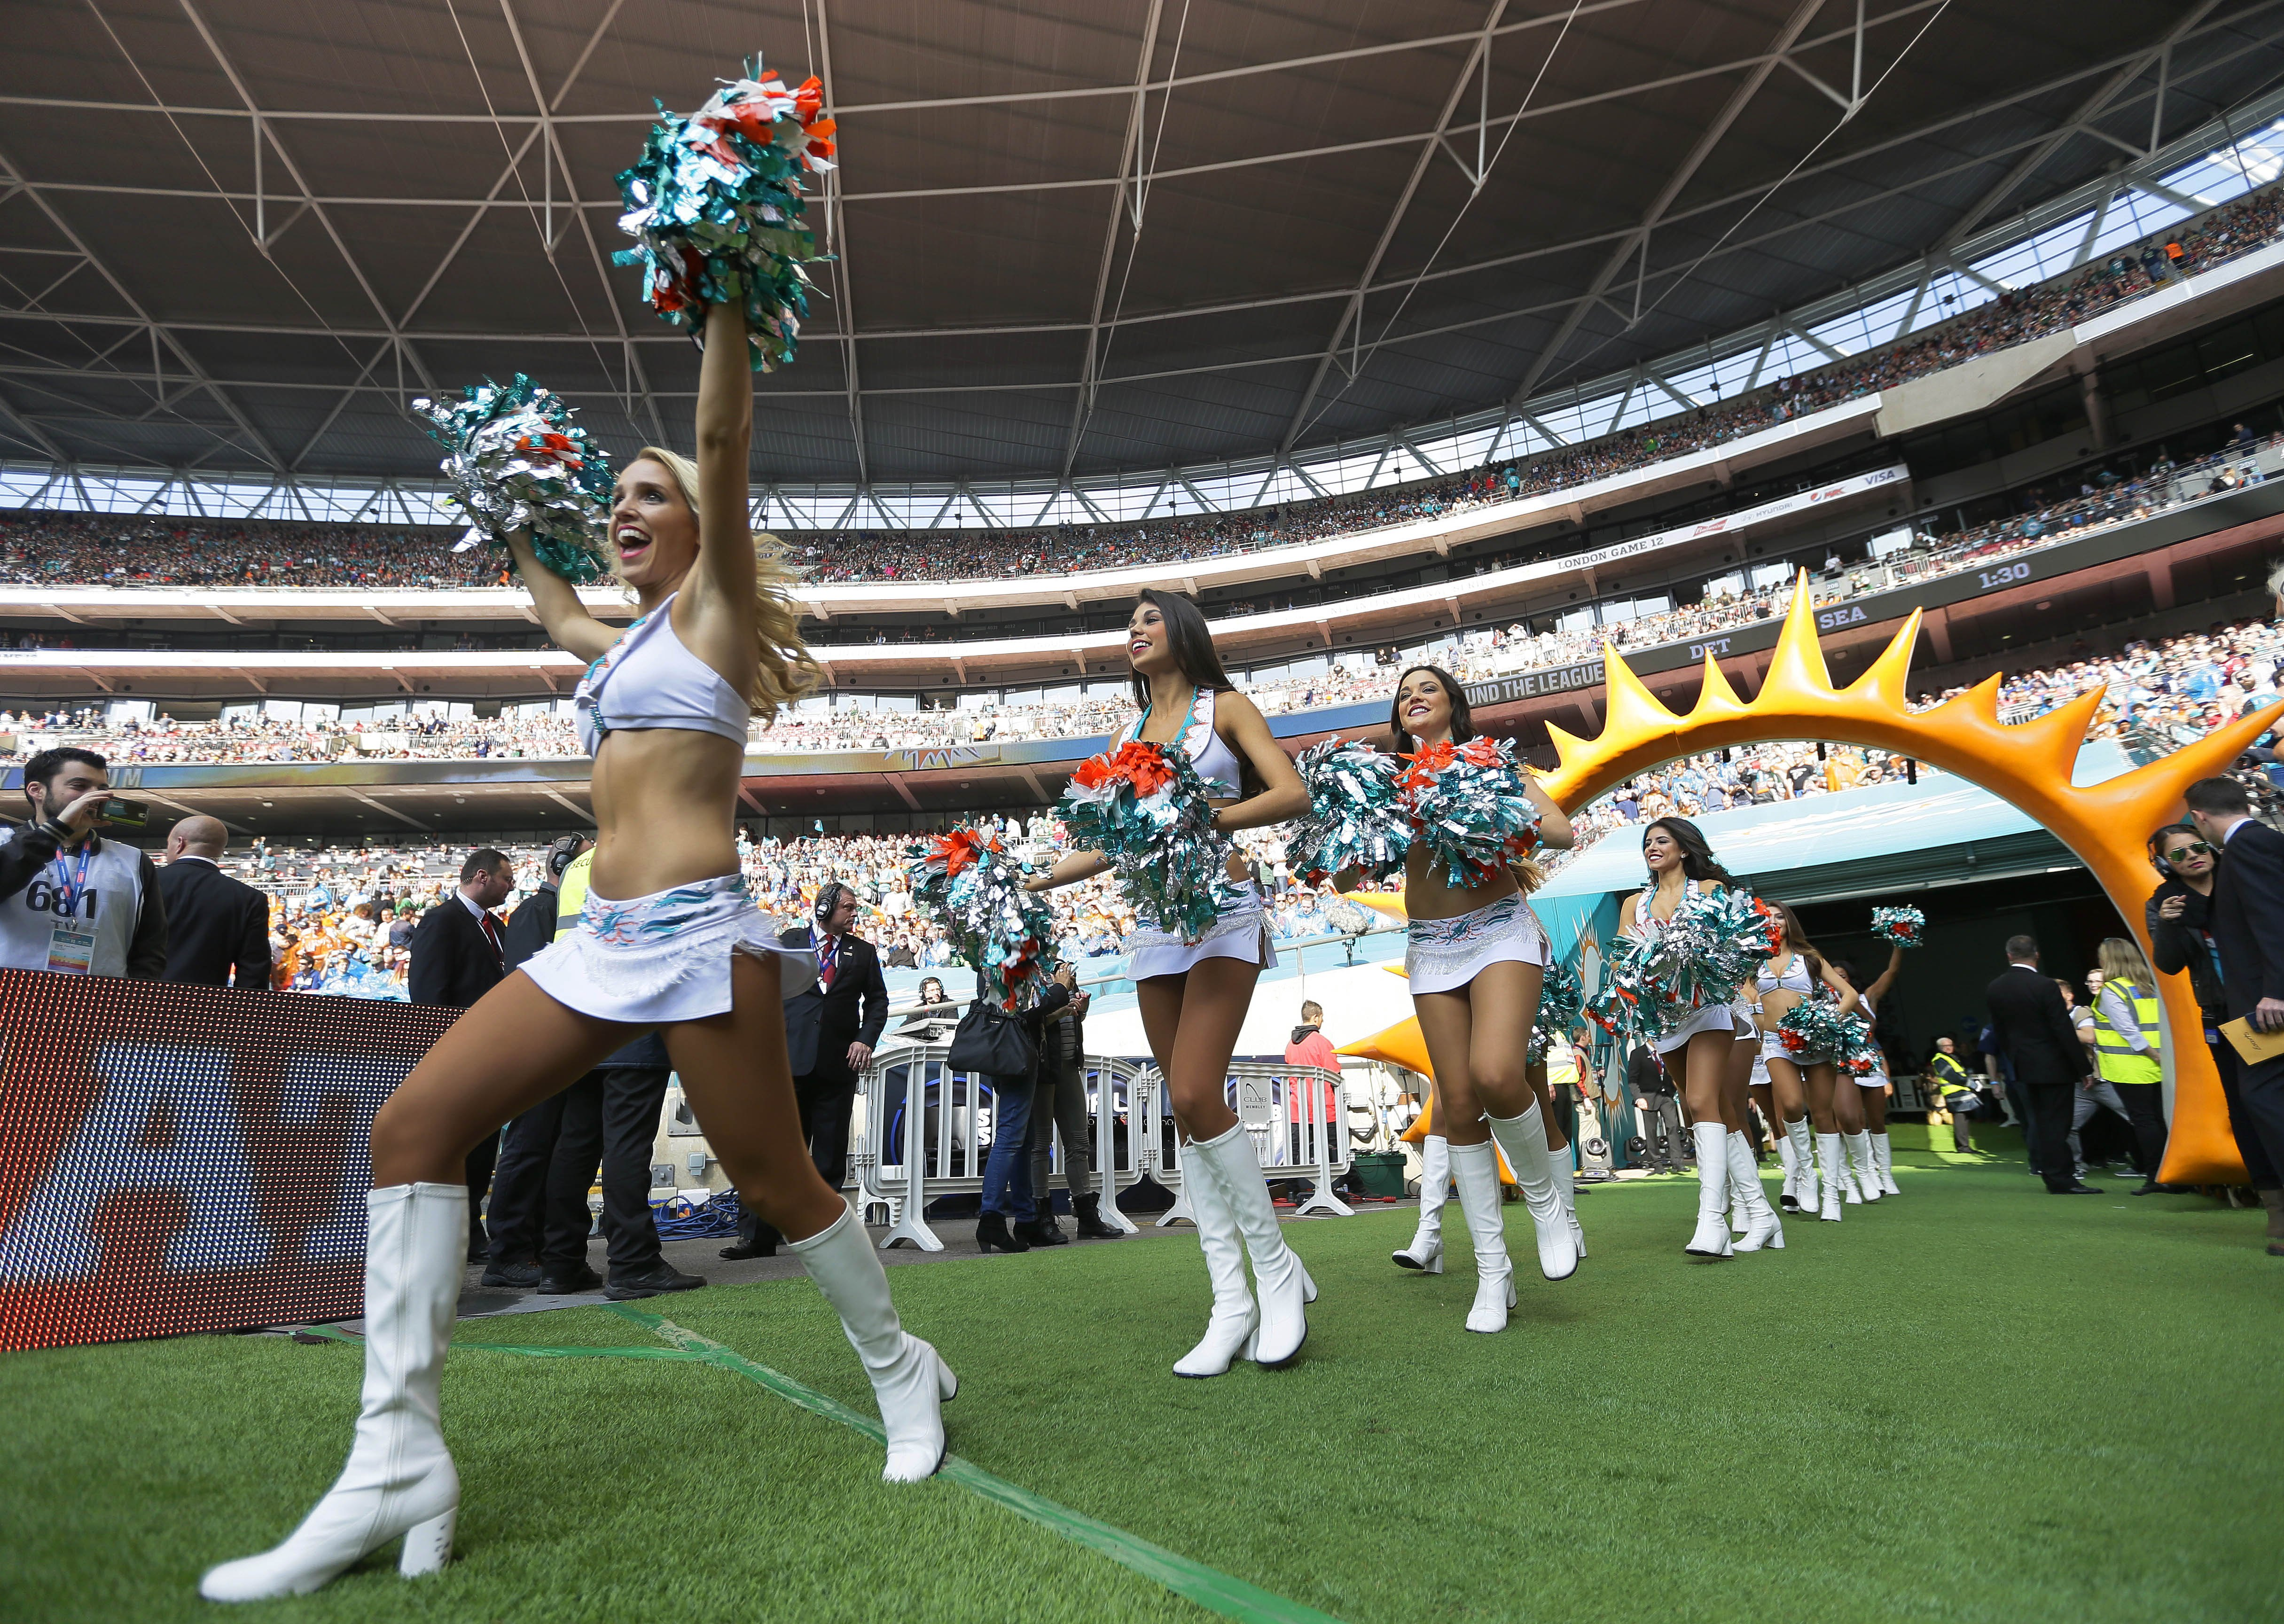 uDolphins cheerleaders come onto the field before the NFL football game between the New York Jets and the Miami Dolphins and at Wembley stadium in London, Sunday, Oct. 4, 2015.  (AP Photo/Tim Ireland)